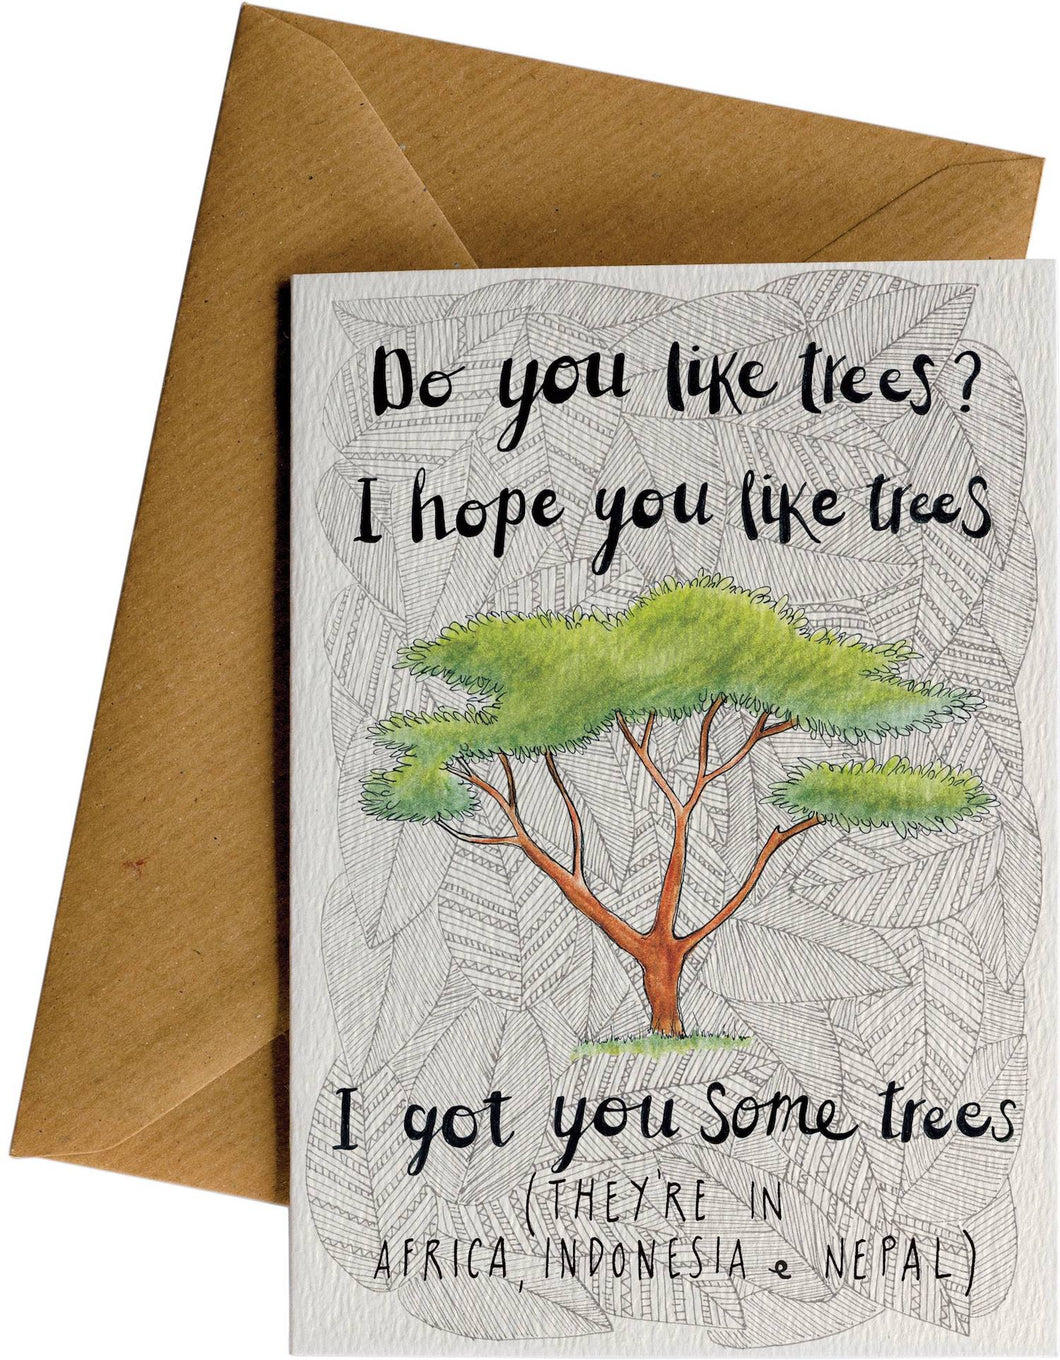 Do you like trees gift card bamwoo bamboo front of bamwoos do you like trees gift card negle Image collections